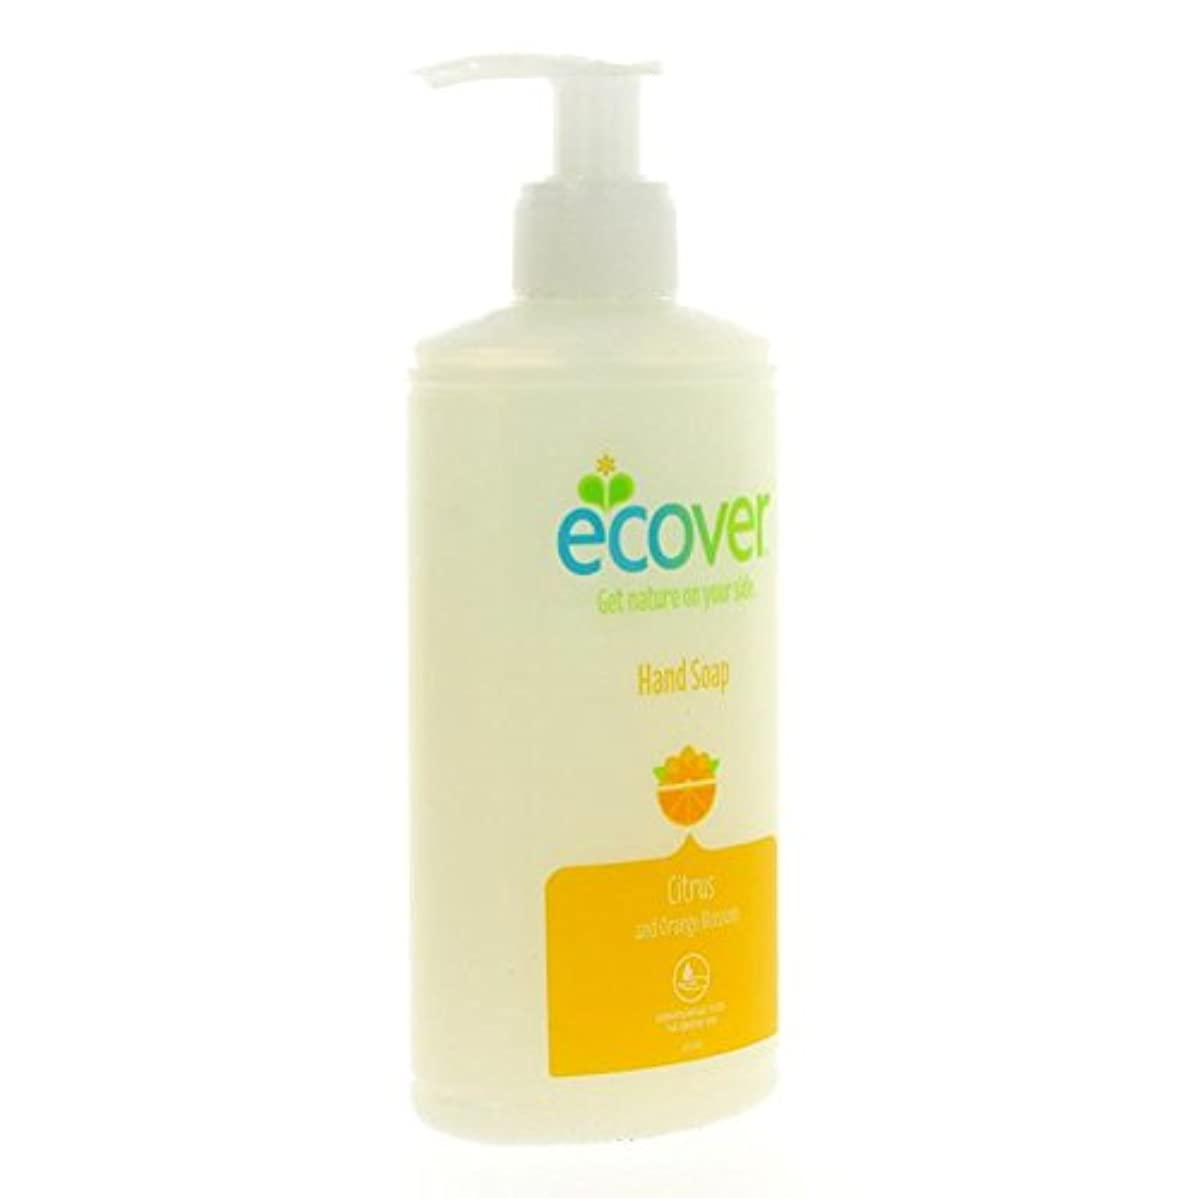 有限関係不確実Ecover - Hand Soap - Citrus and Orange Blossom - 250ml (Case of 6)